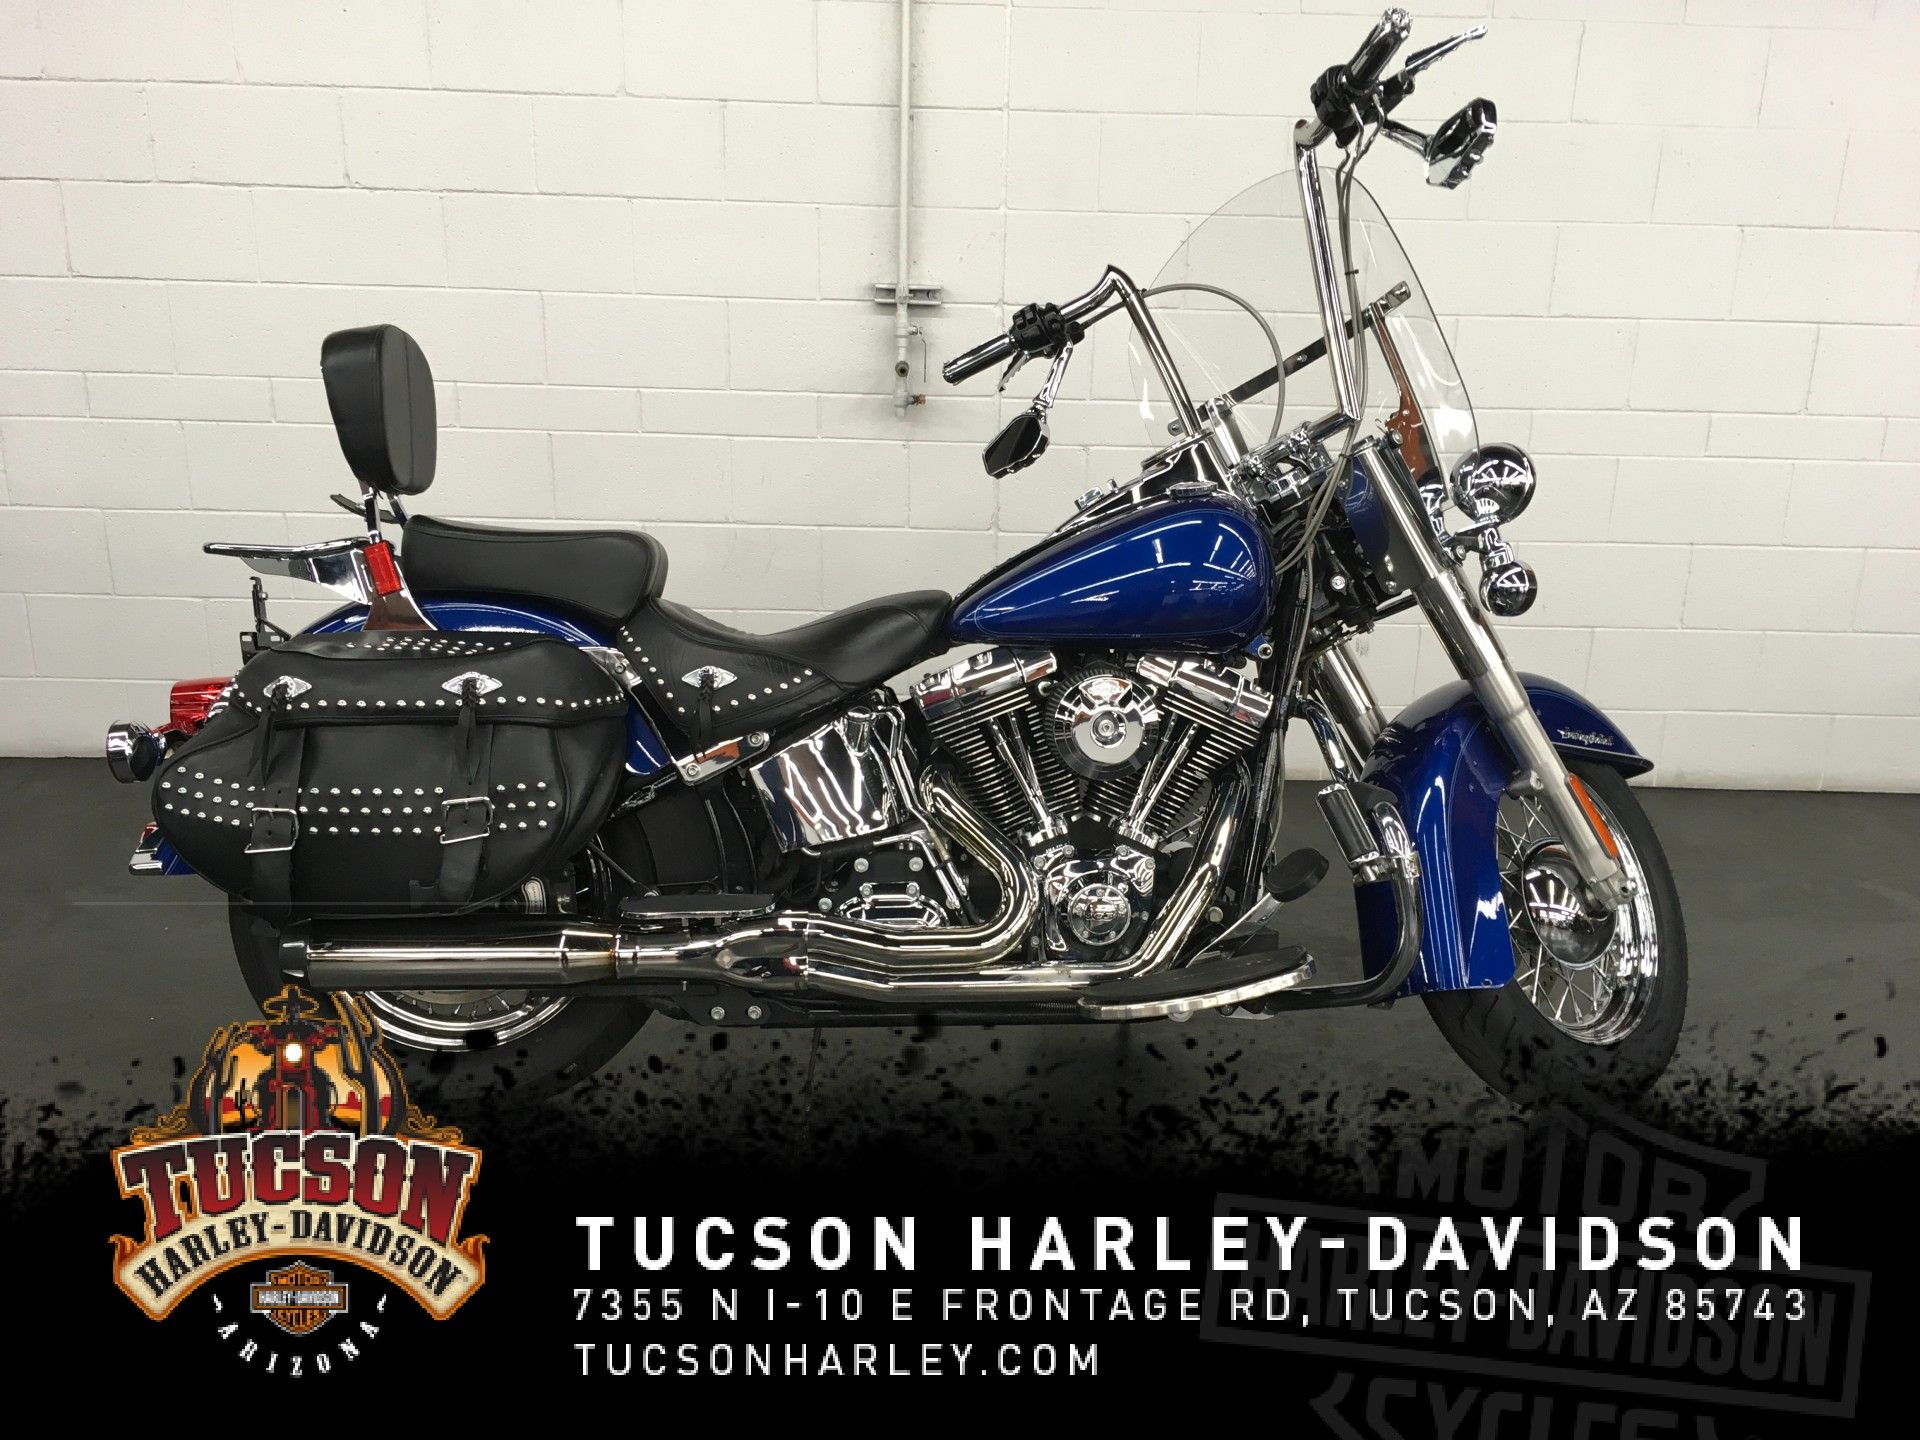 Pre-Owned 2015 Harley-Davidson Softail Heritage Softail Classic FLSTC